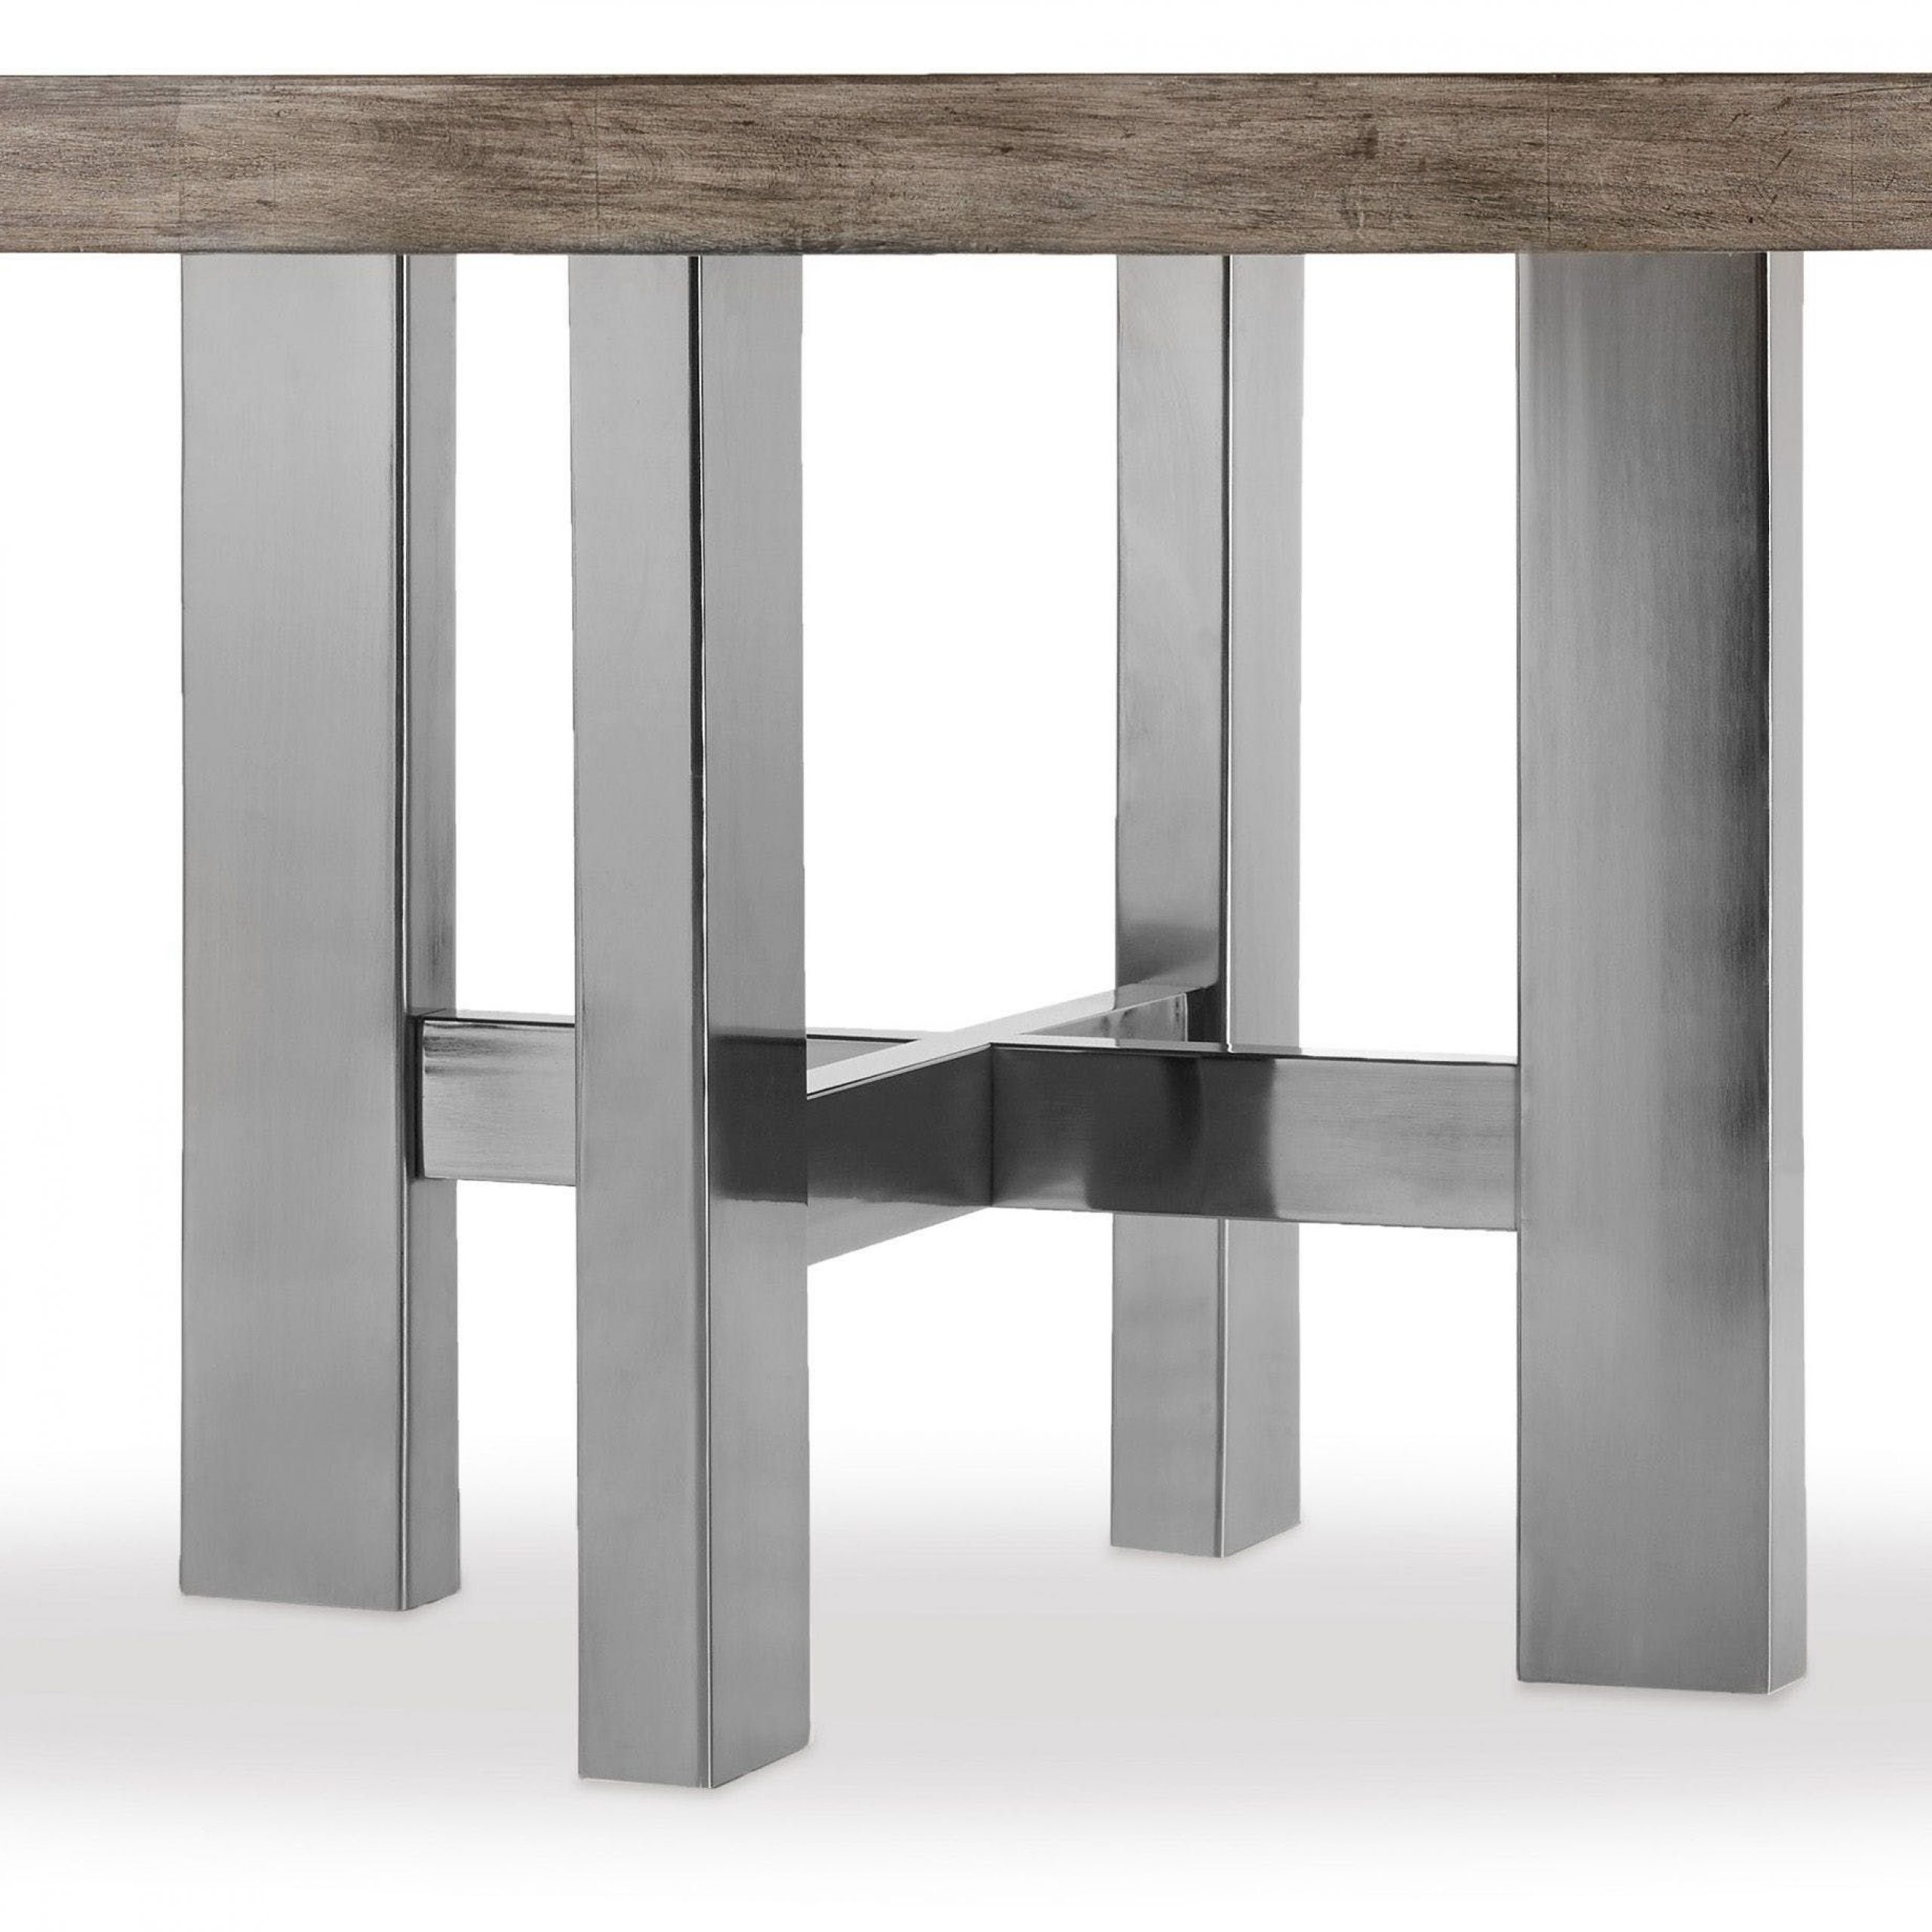 72 Inch And 62 Inch Round Dining Tables Combine The Mountain In Recent Christie Round Marble Dining Tables (View 11 of 25)